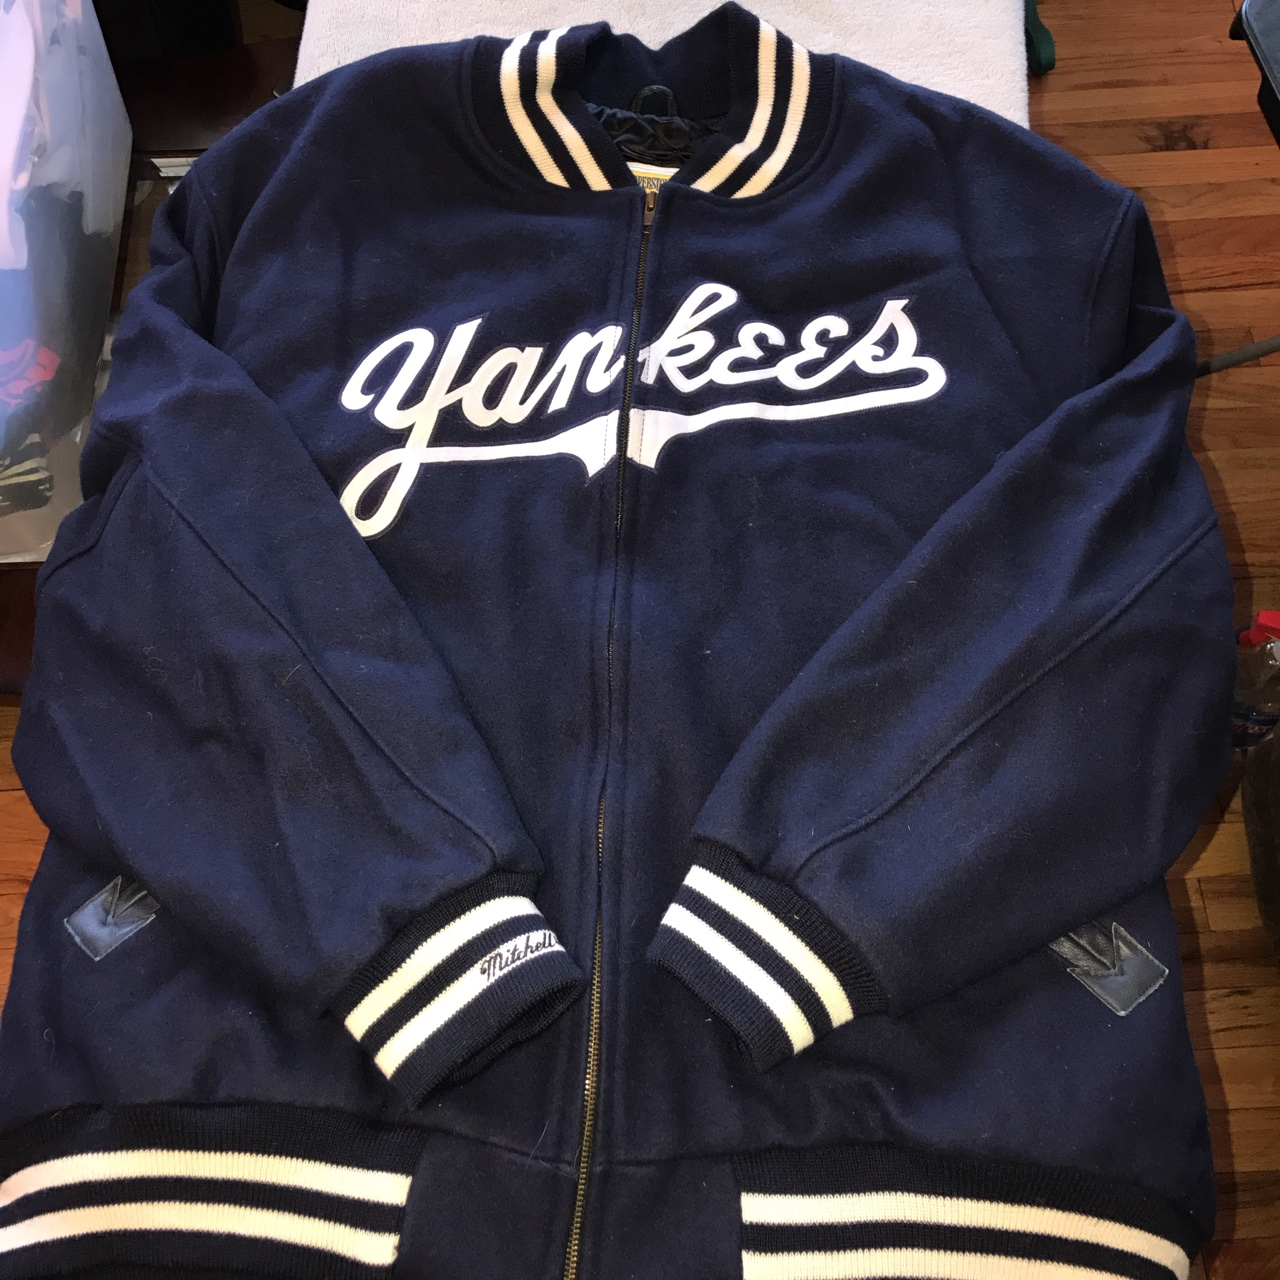 quality design 2e305 756c4 Mitchell & ness Cooperstown NEW YORK YANKEES Jacket ...